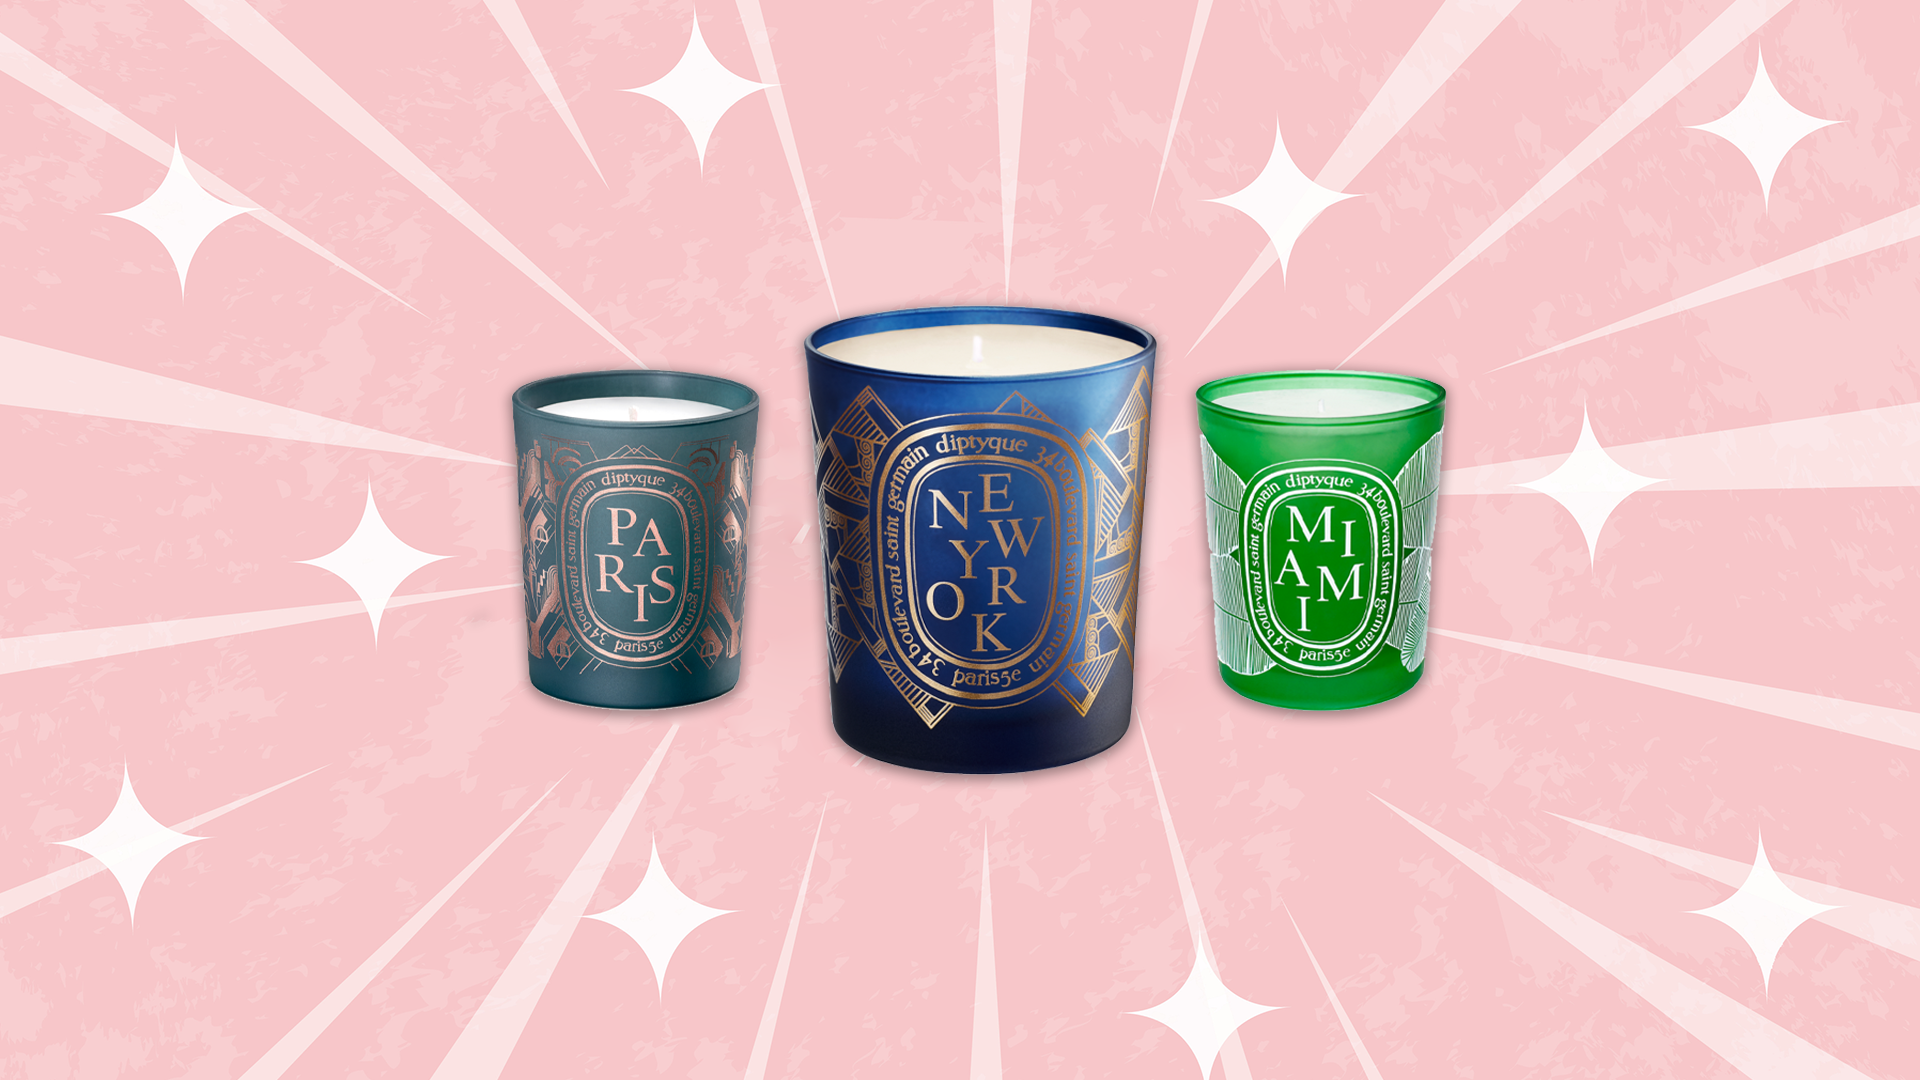 Shop Diptyque's Iconic City Candles Online For One Week Only